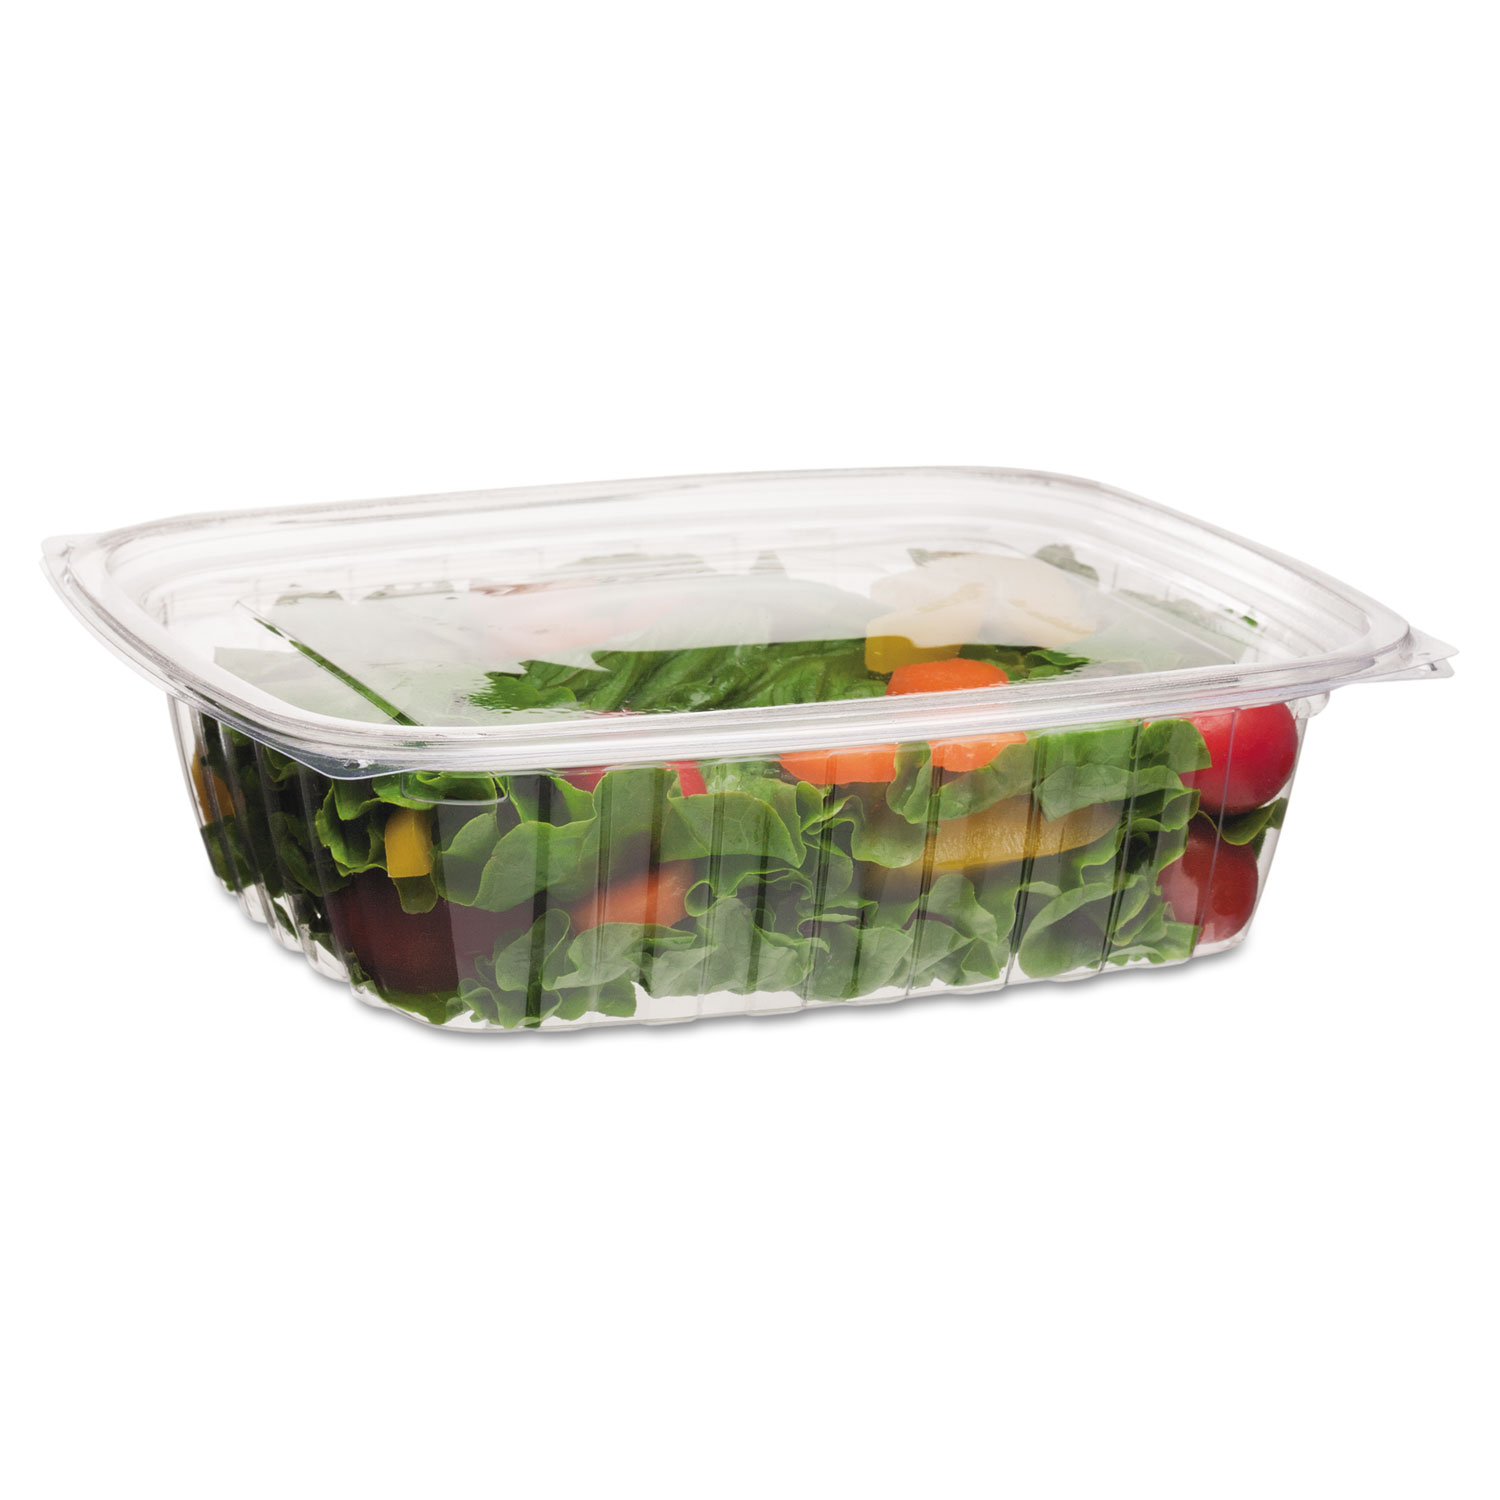 Renewable and Compostable Rectangular Deli Containers, 48 oz, 50/Pack, 4 Packs/Carton ECOEPRC48